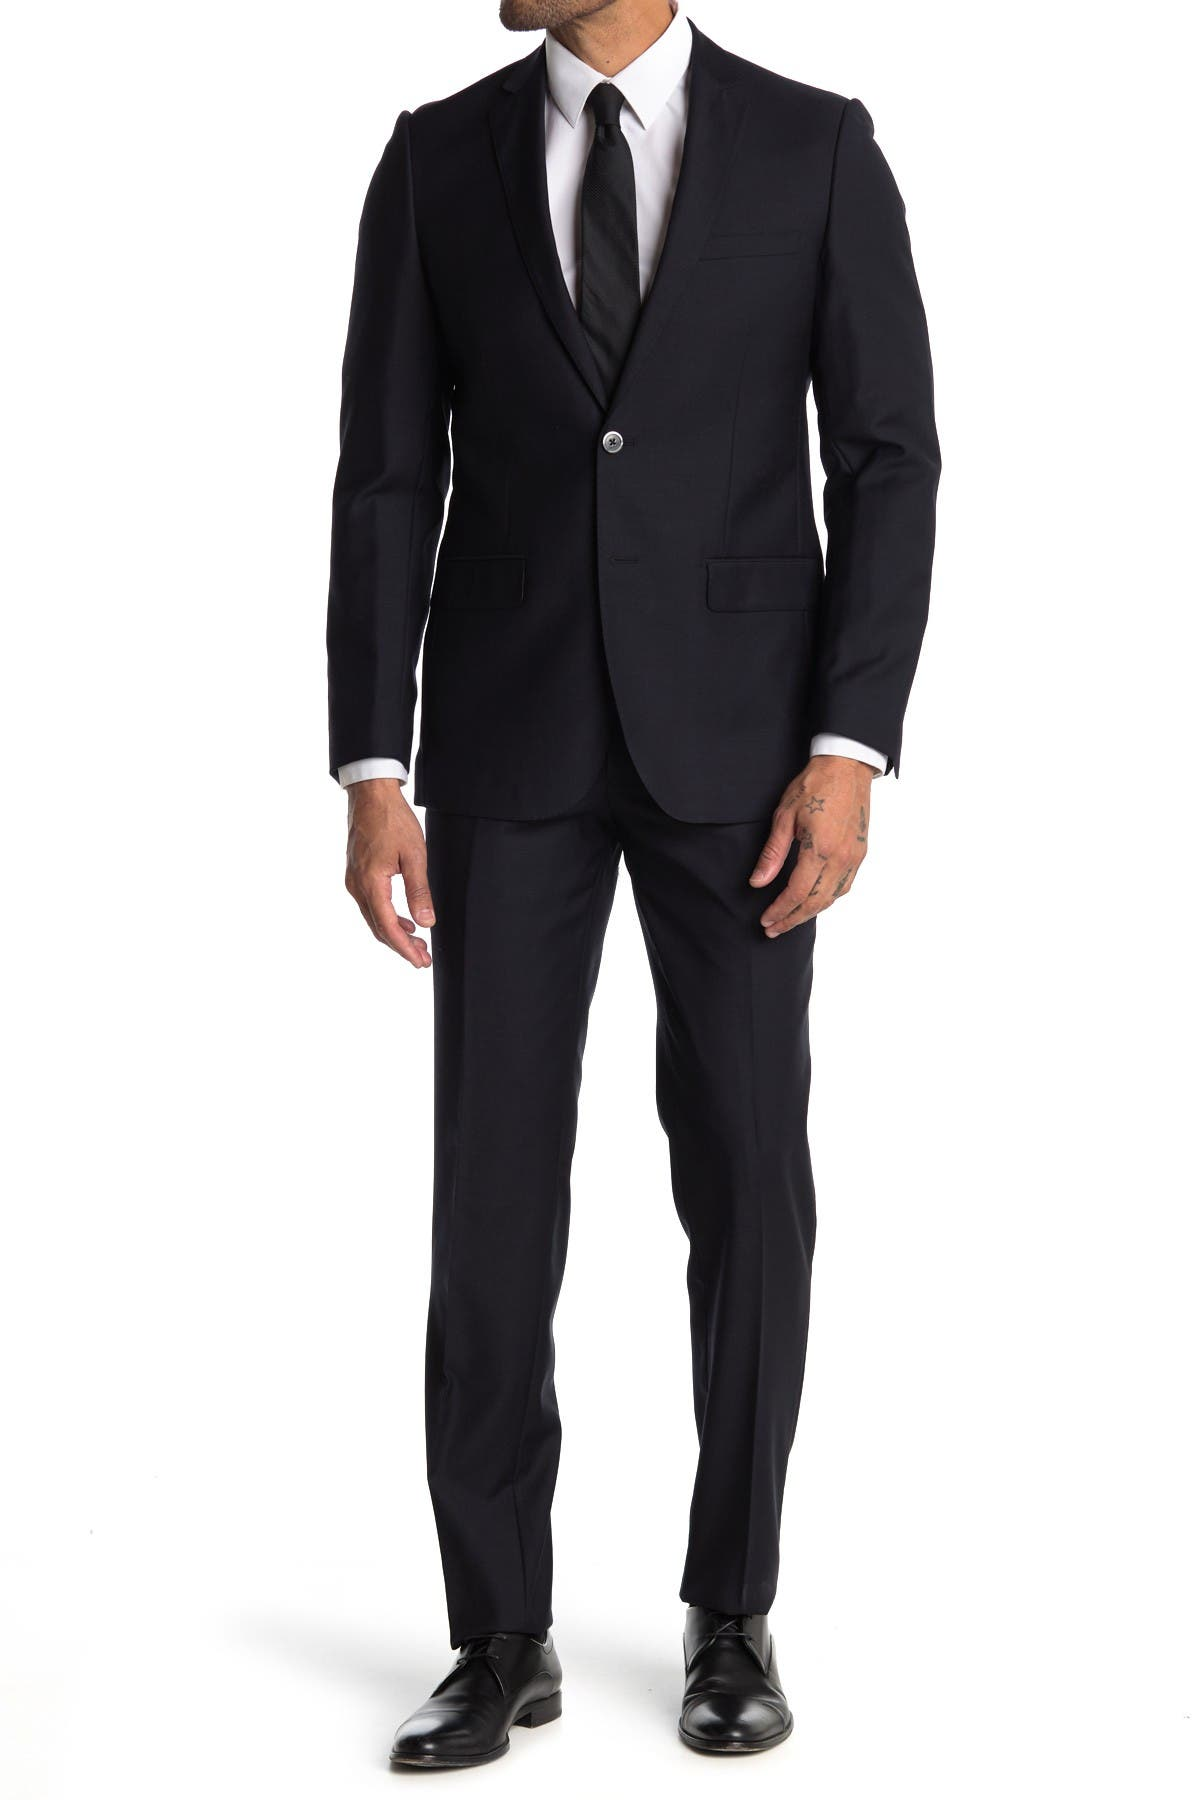 Image of Zanetti Nevy Blue Slim Fit Notch Lapel Two-Button Wool Suit